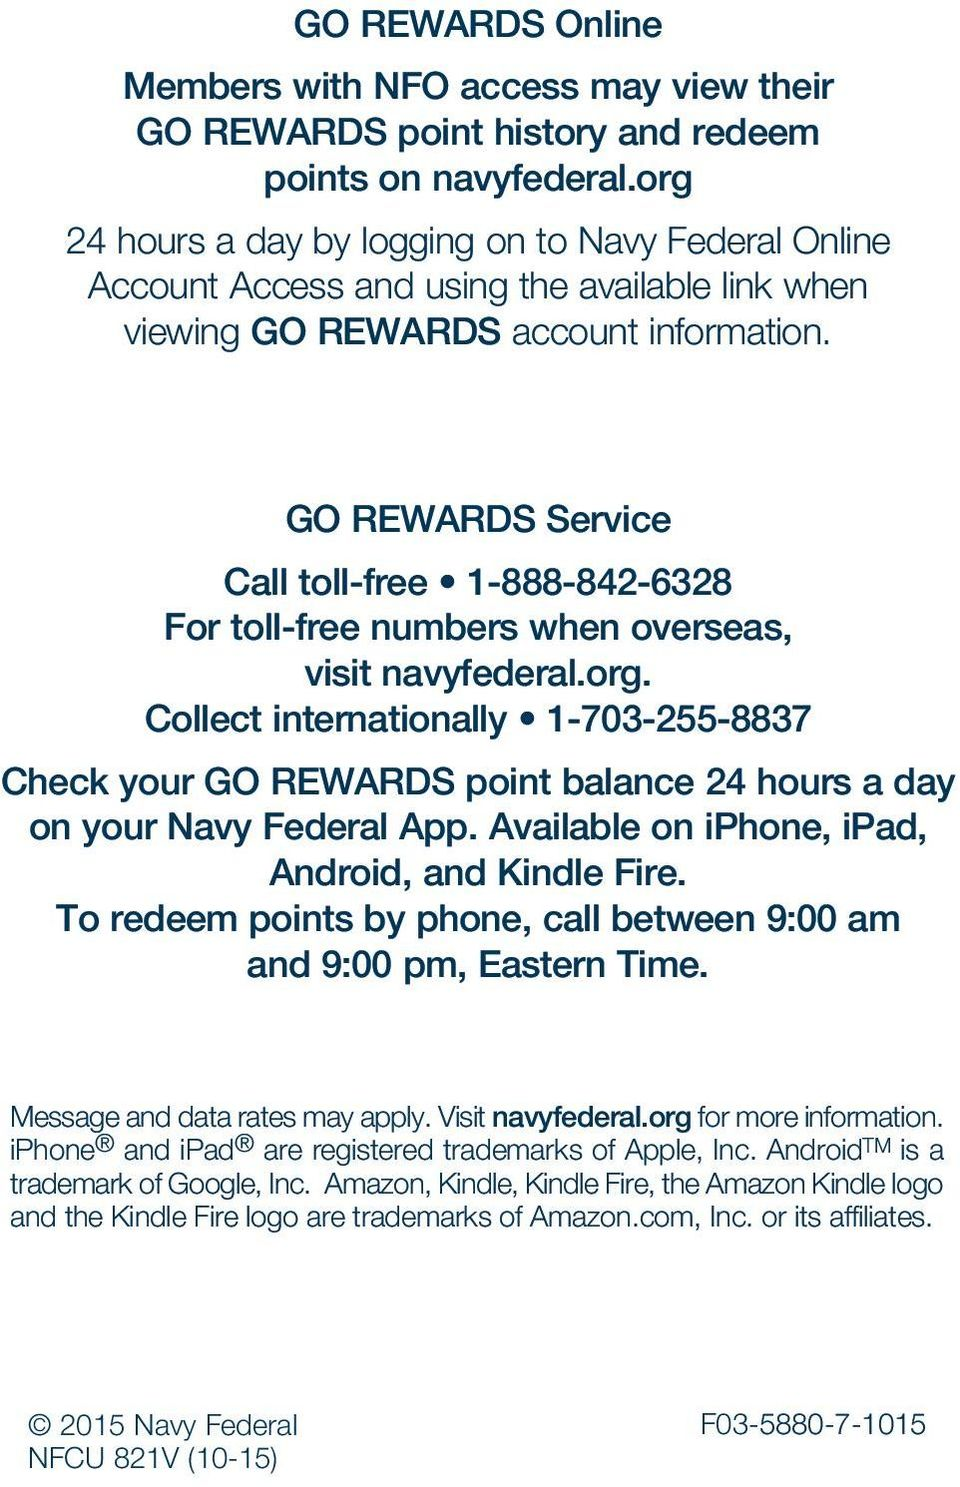 GO REWARDS Service Call toll-free 1-888-842-6328 For toll-free numbers when overseas, visit navyfederal.org.